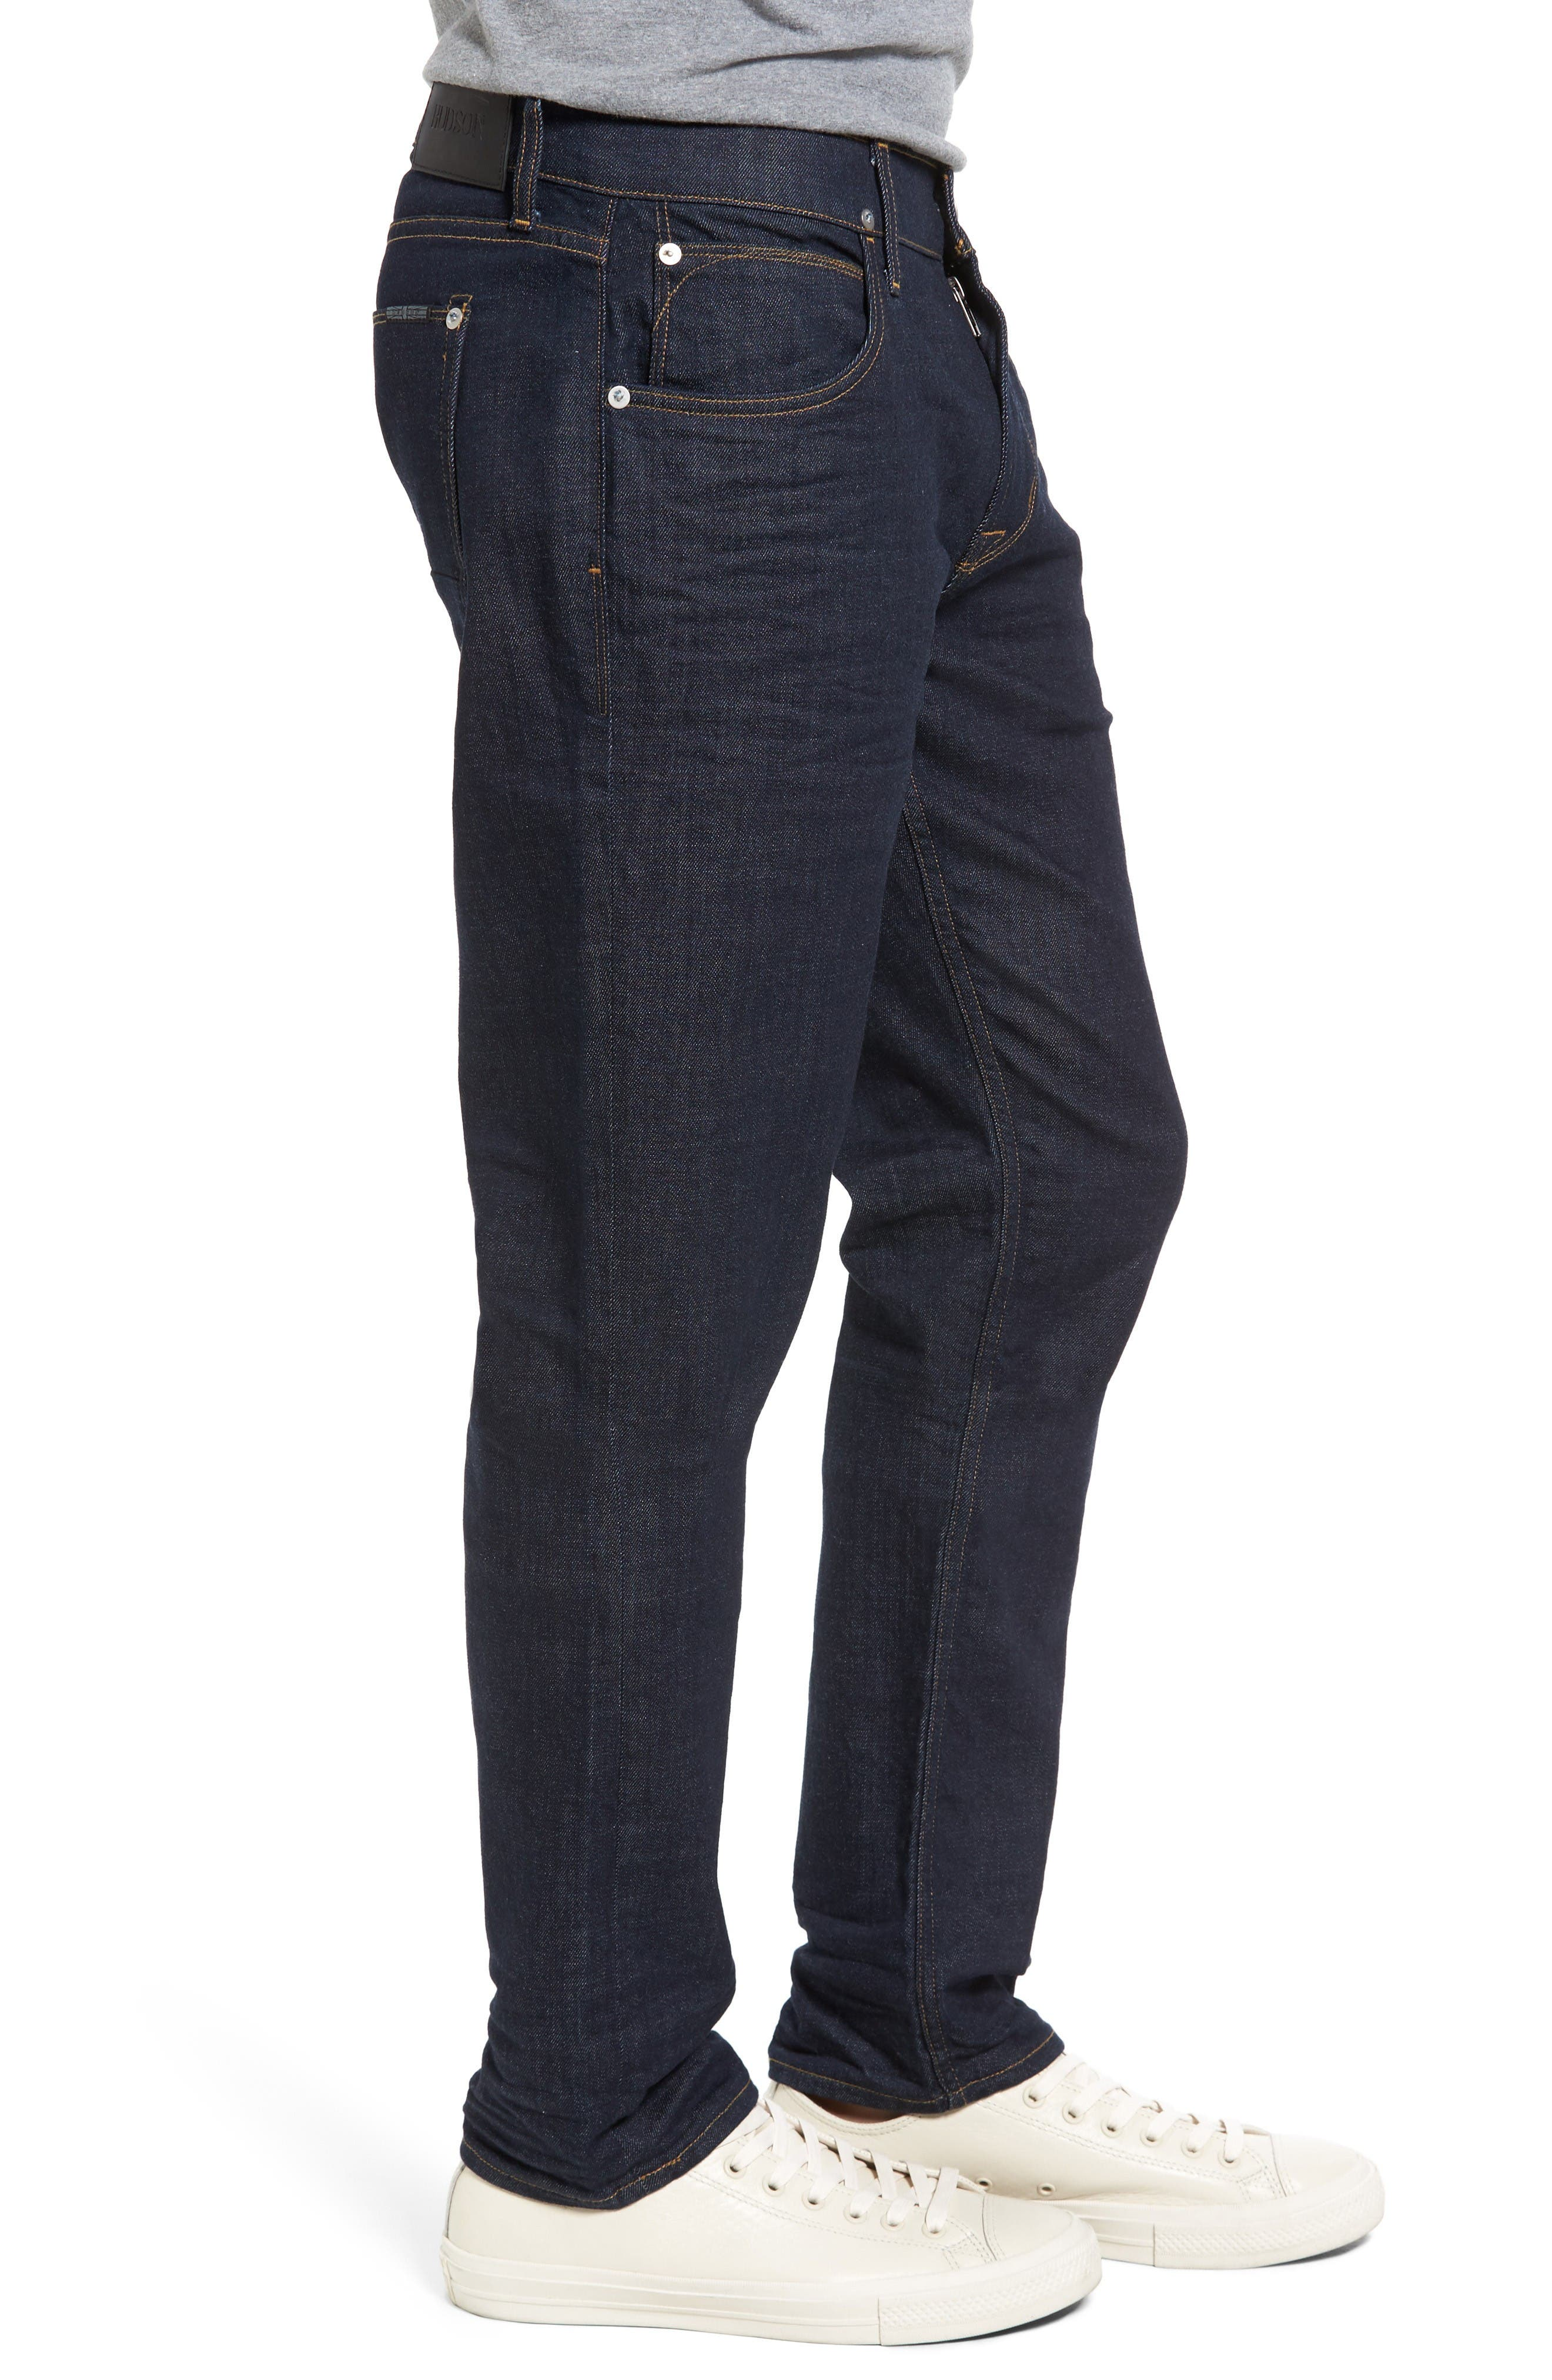 Blake Slim Fit Jeans,                             Alternate thumbnail 3, color,                             Anonymous